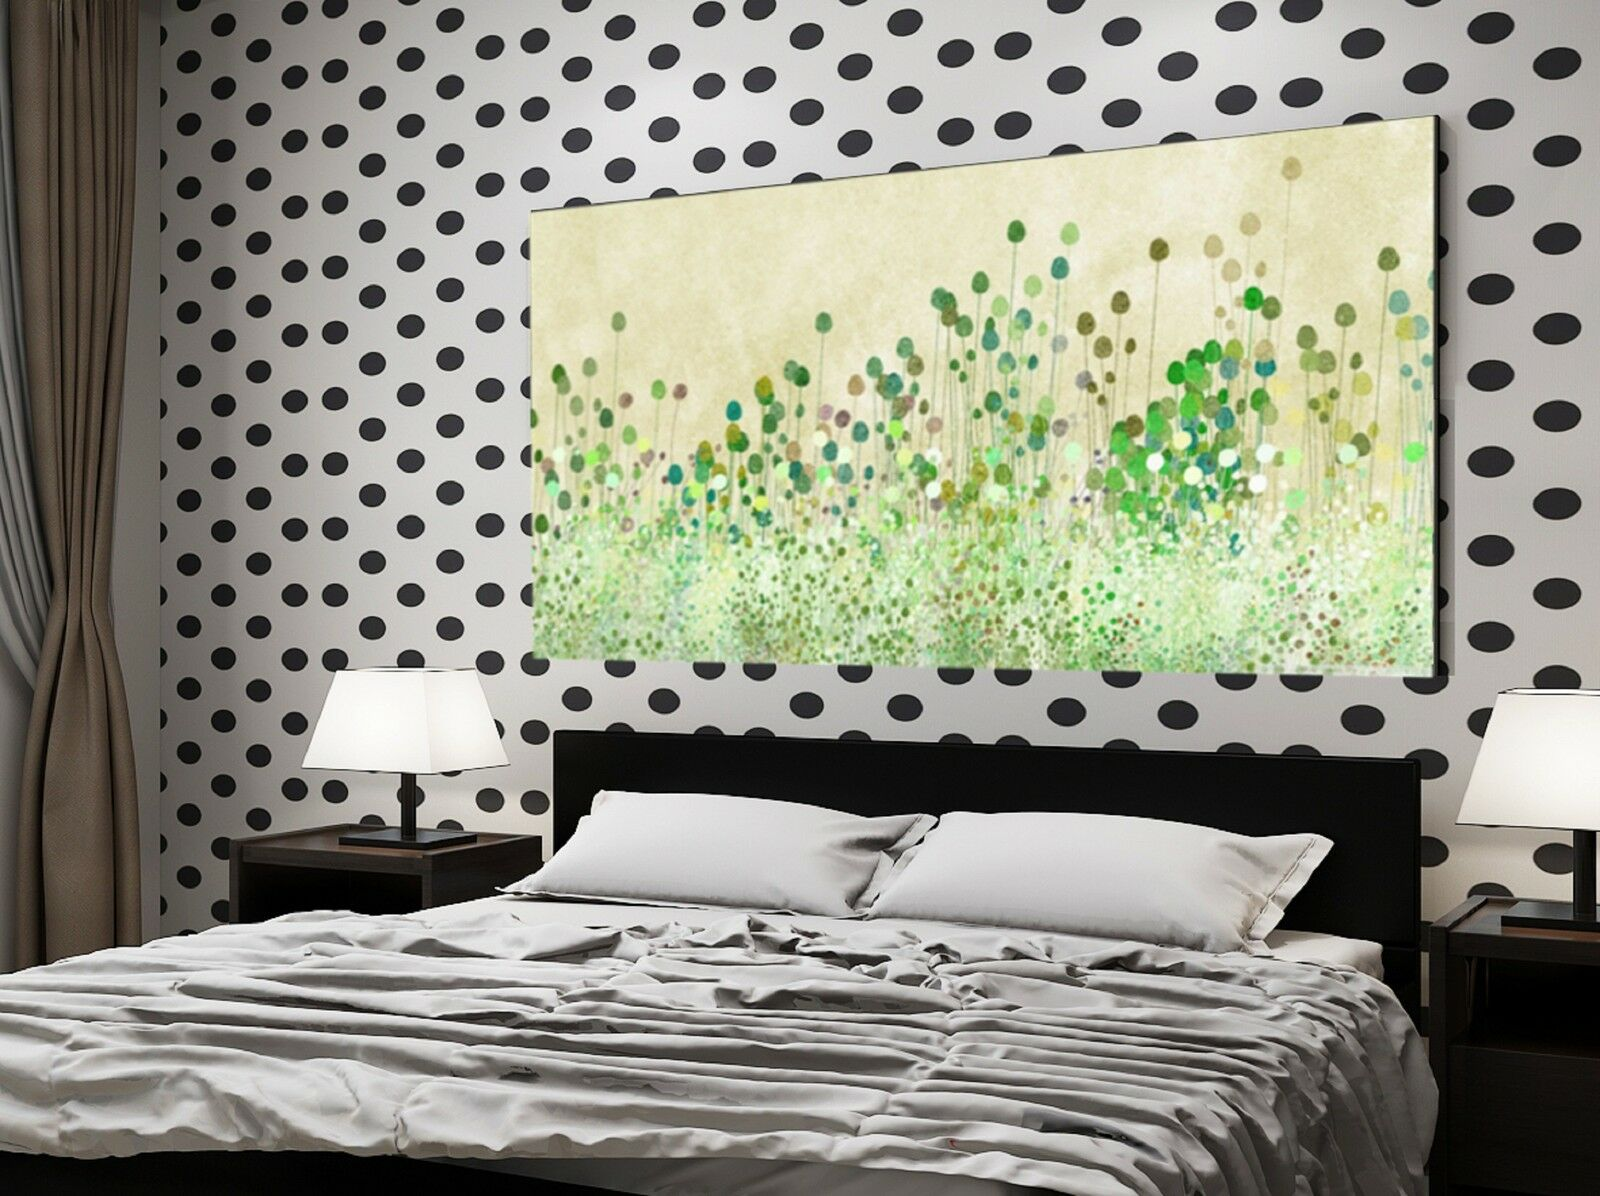 xxl panorama leinwand 150x85x5 gras natur bild gem lde vintage ikea floral eur 89 99 picclick de. Black Bedroom Furniture Sets. Home Design Ideas